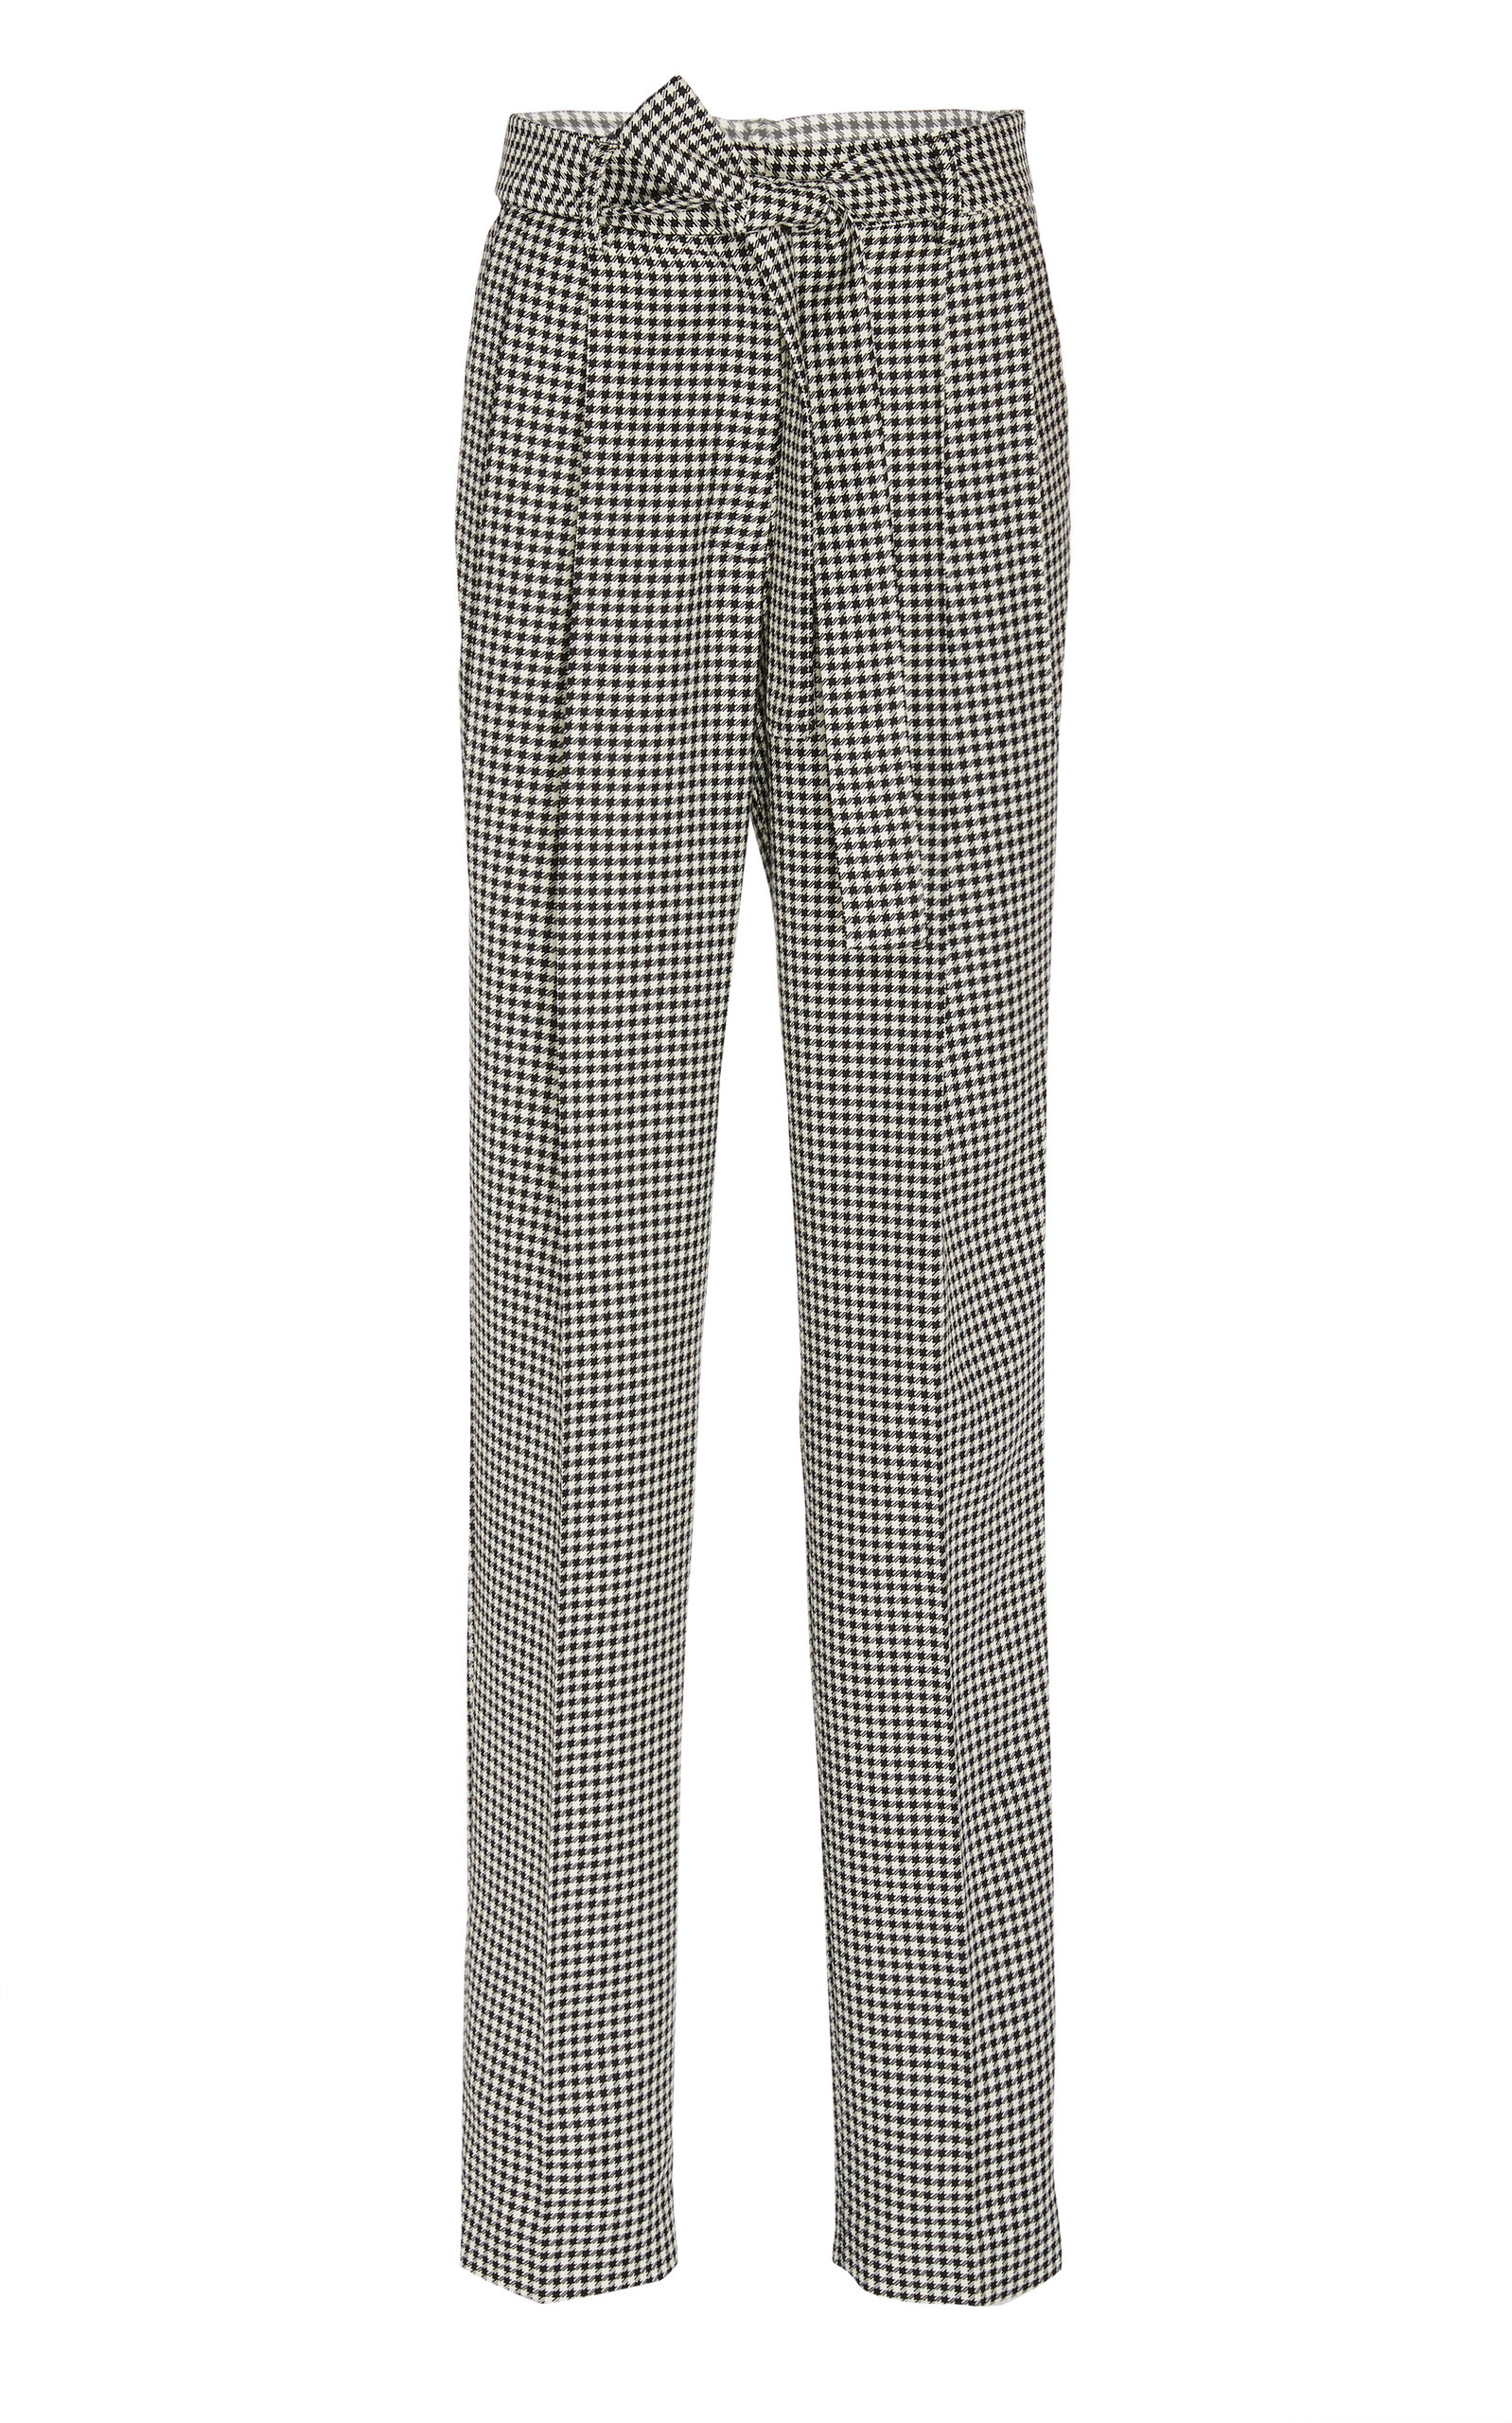 Prabal Gurung Pants SIMONE BELTED HOUNDSTOOTH WOOL TAPERED PANTS